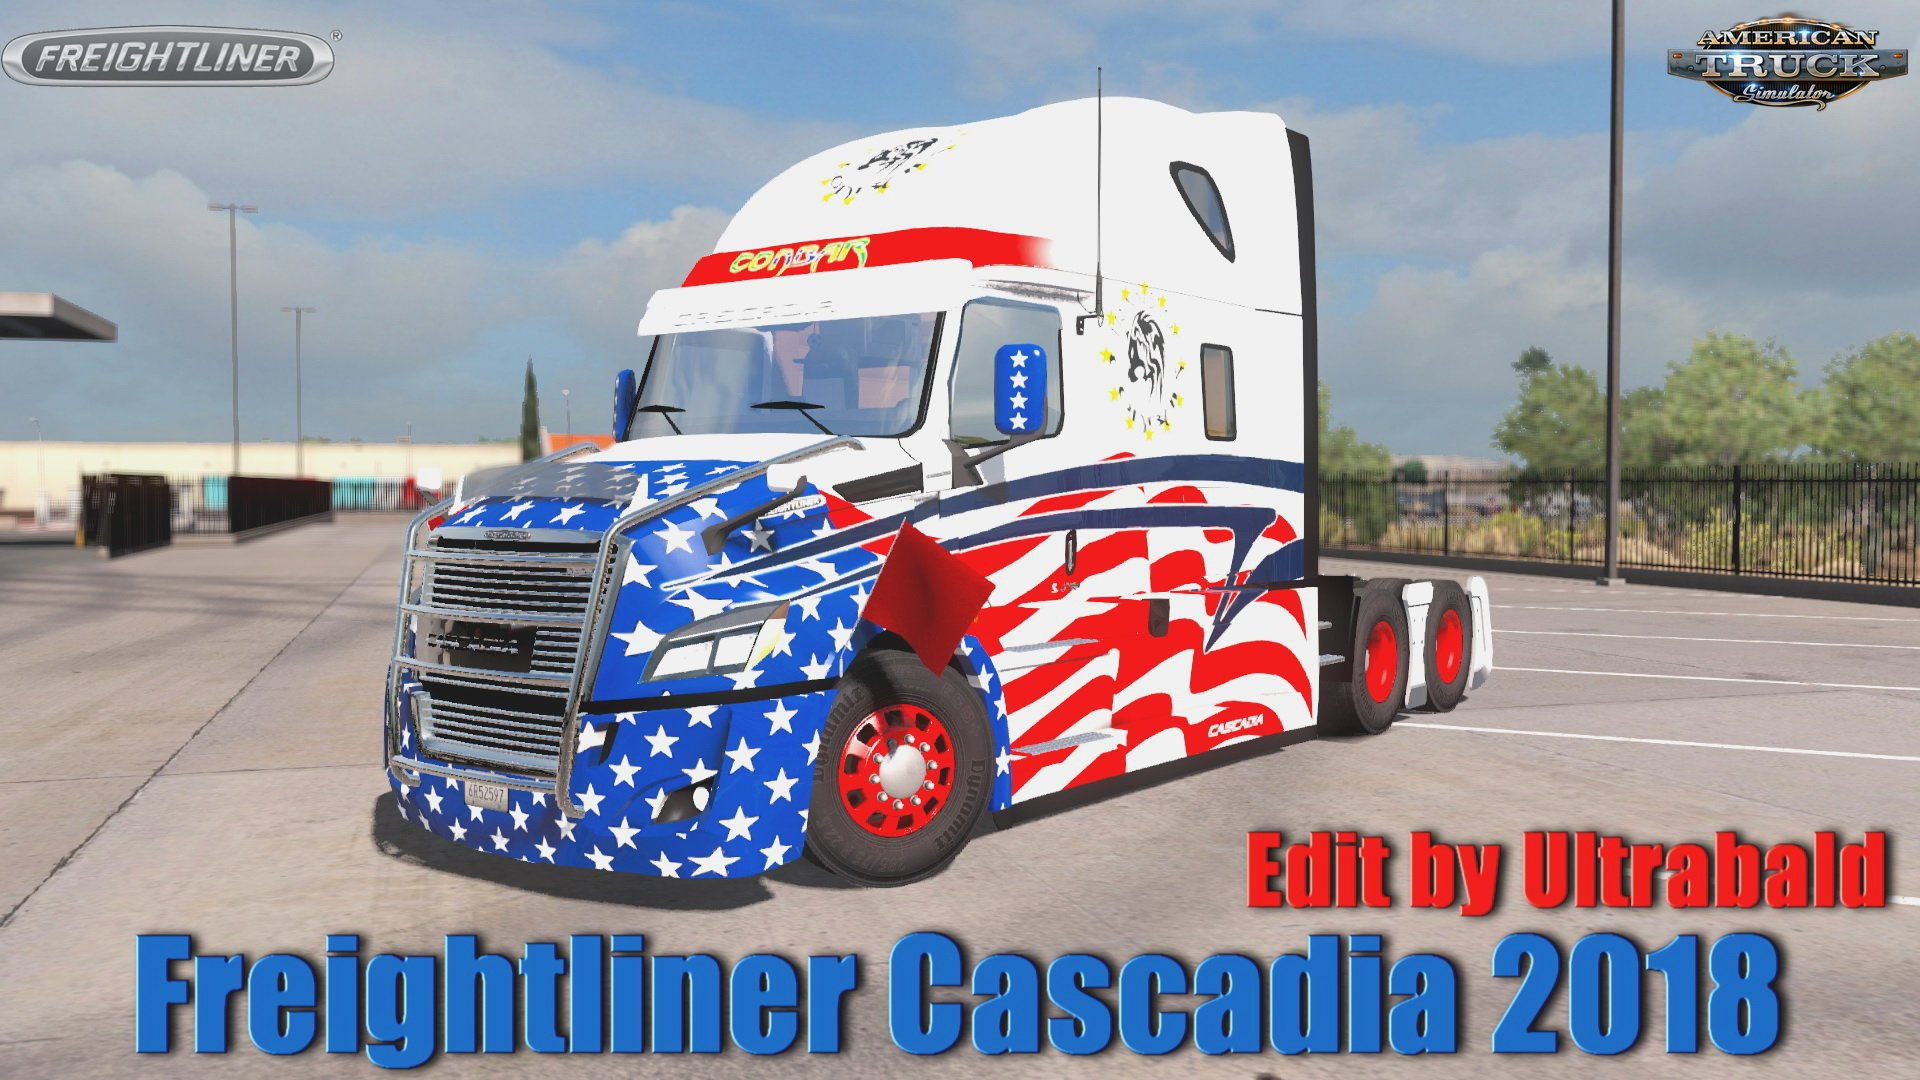 Freightliner Cascadia 2018 v1.6.1 Ultrabald Edition (1.35.x) for ATS